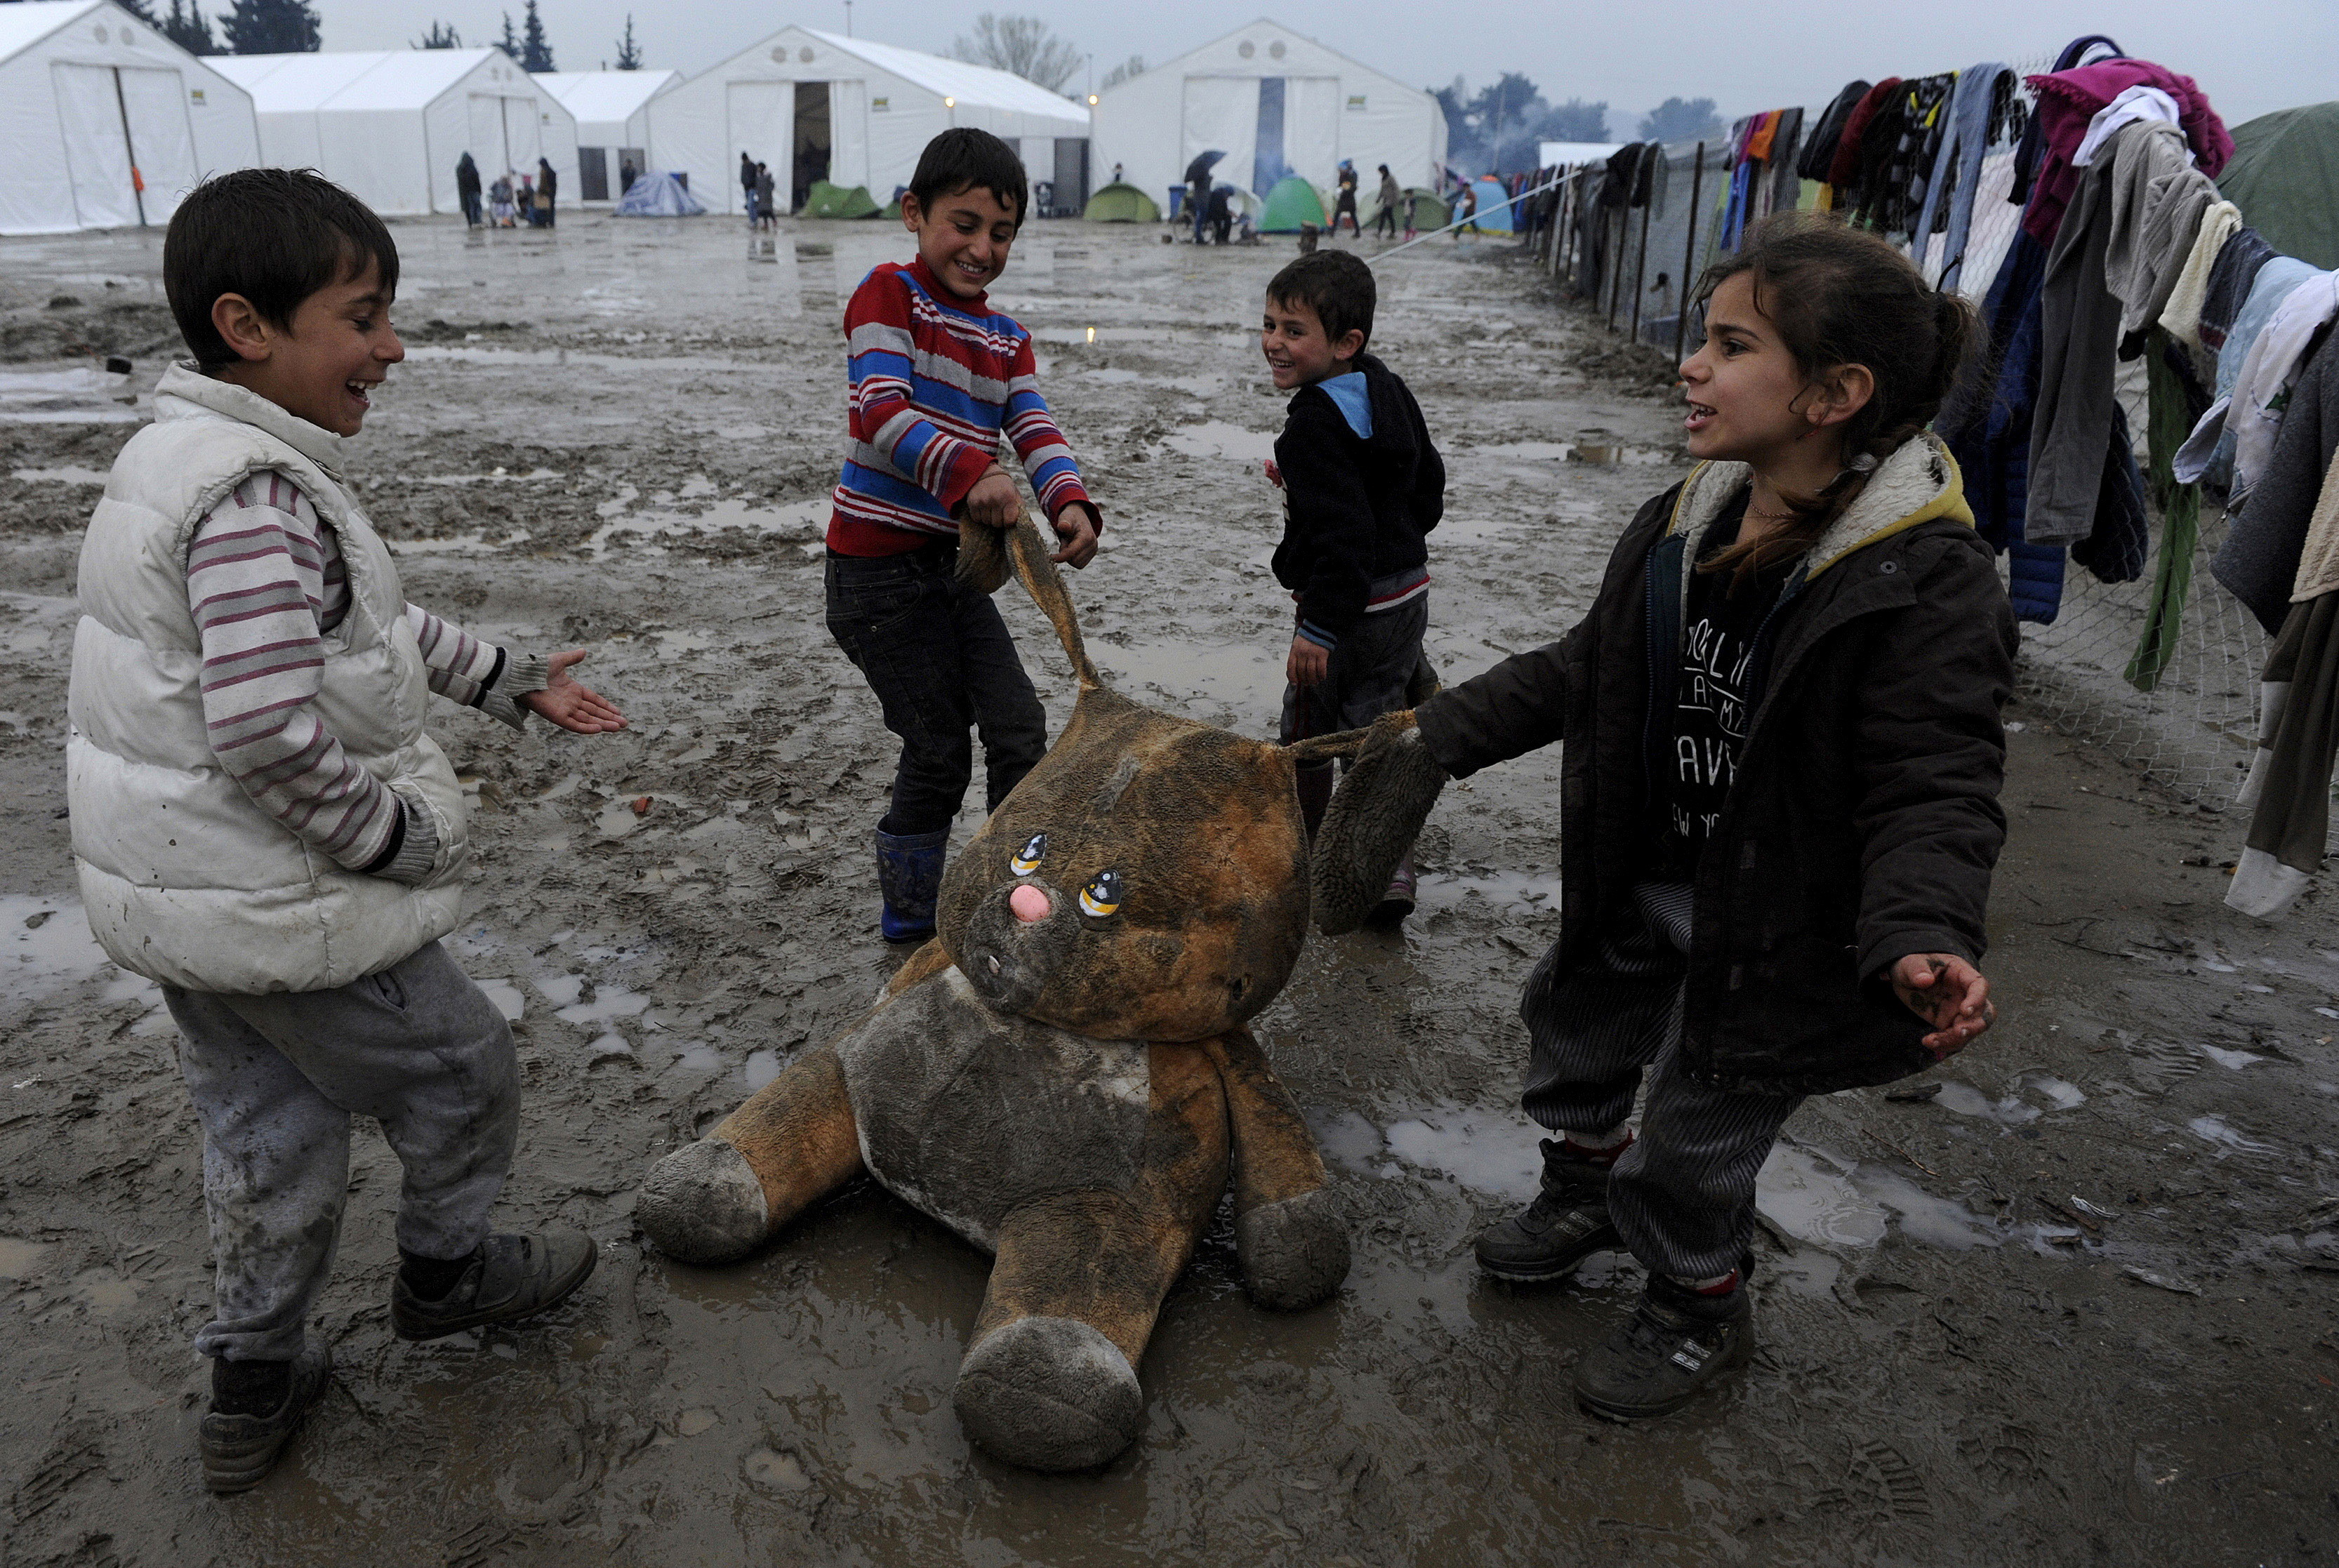 Refugee children play with a stuffed toy at a muddy makeshift camp at the Greek-Macedonian border, near the village of Idomeni, Greece March 15, 2016. REUTERS/Alexandros Avramidis      TPX IMAGES OF THE DAY - GF10000346539